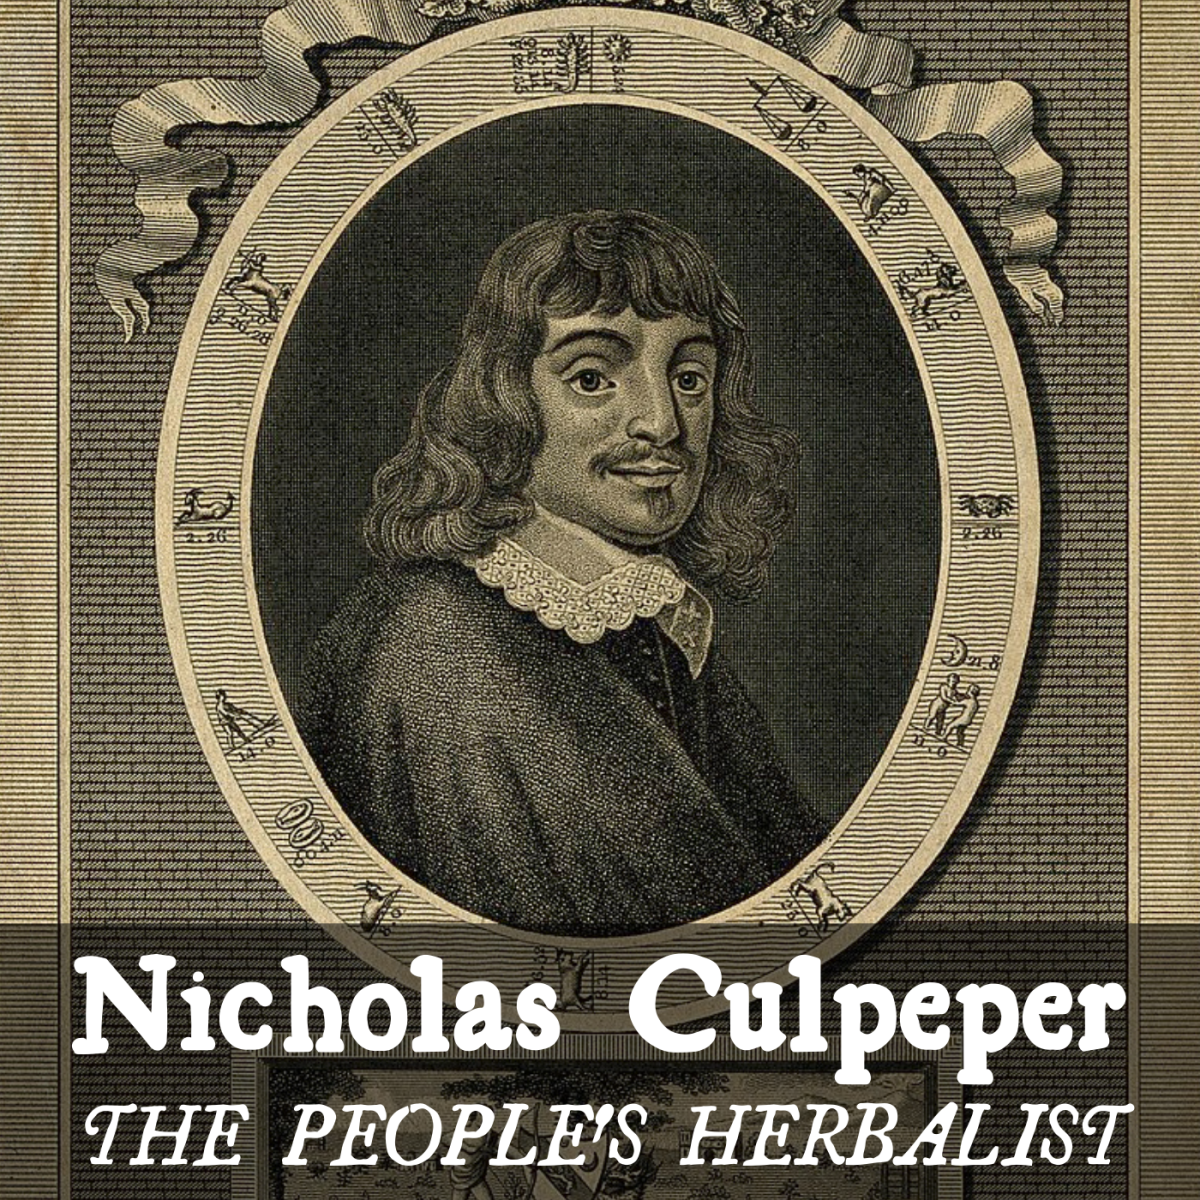 Nicholas Culpeper is still referred to as 'the people's herbalist.'